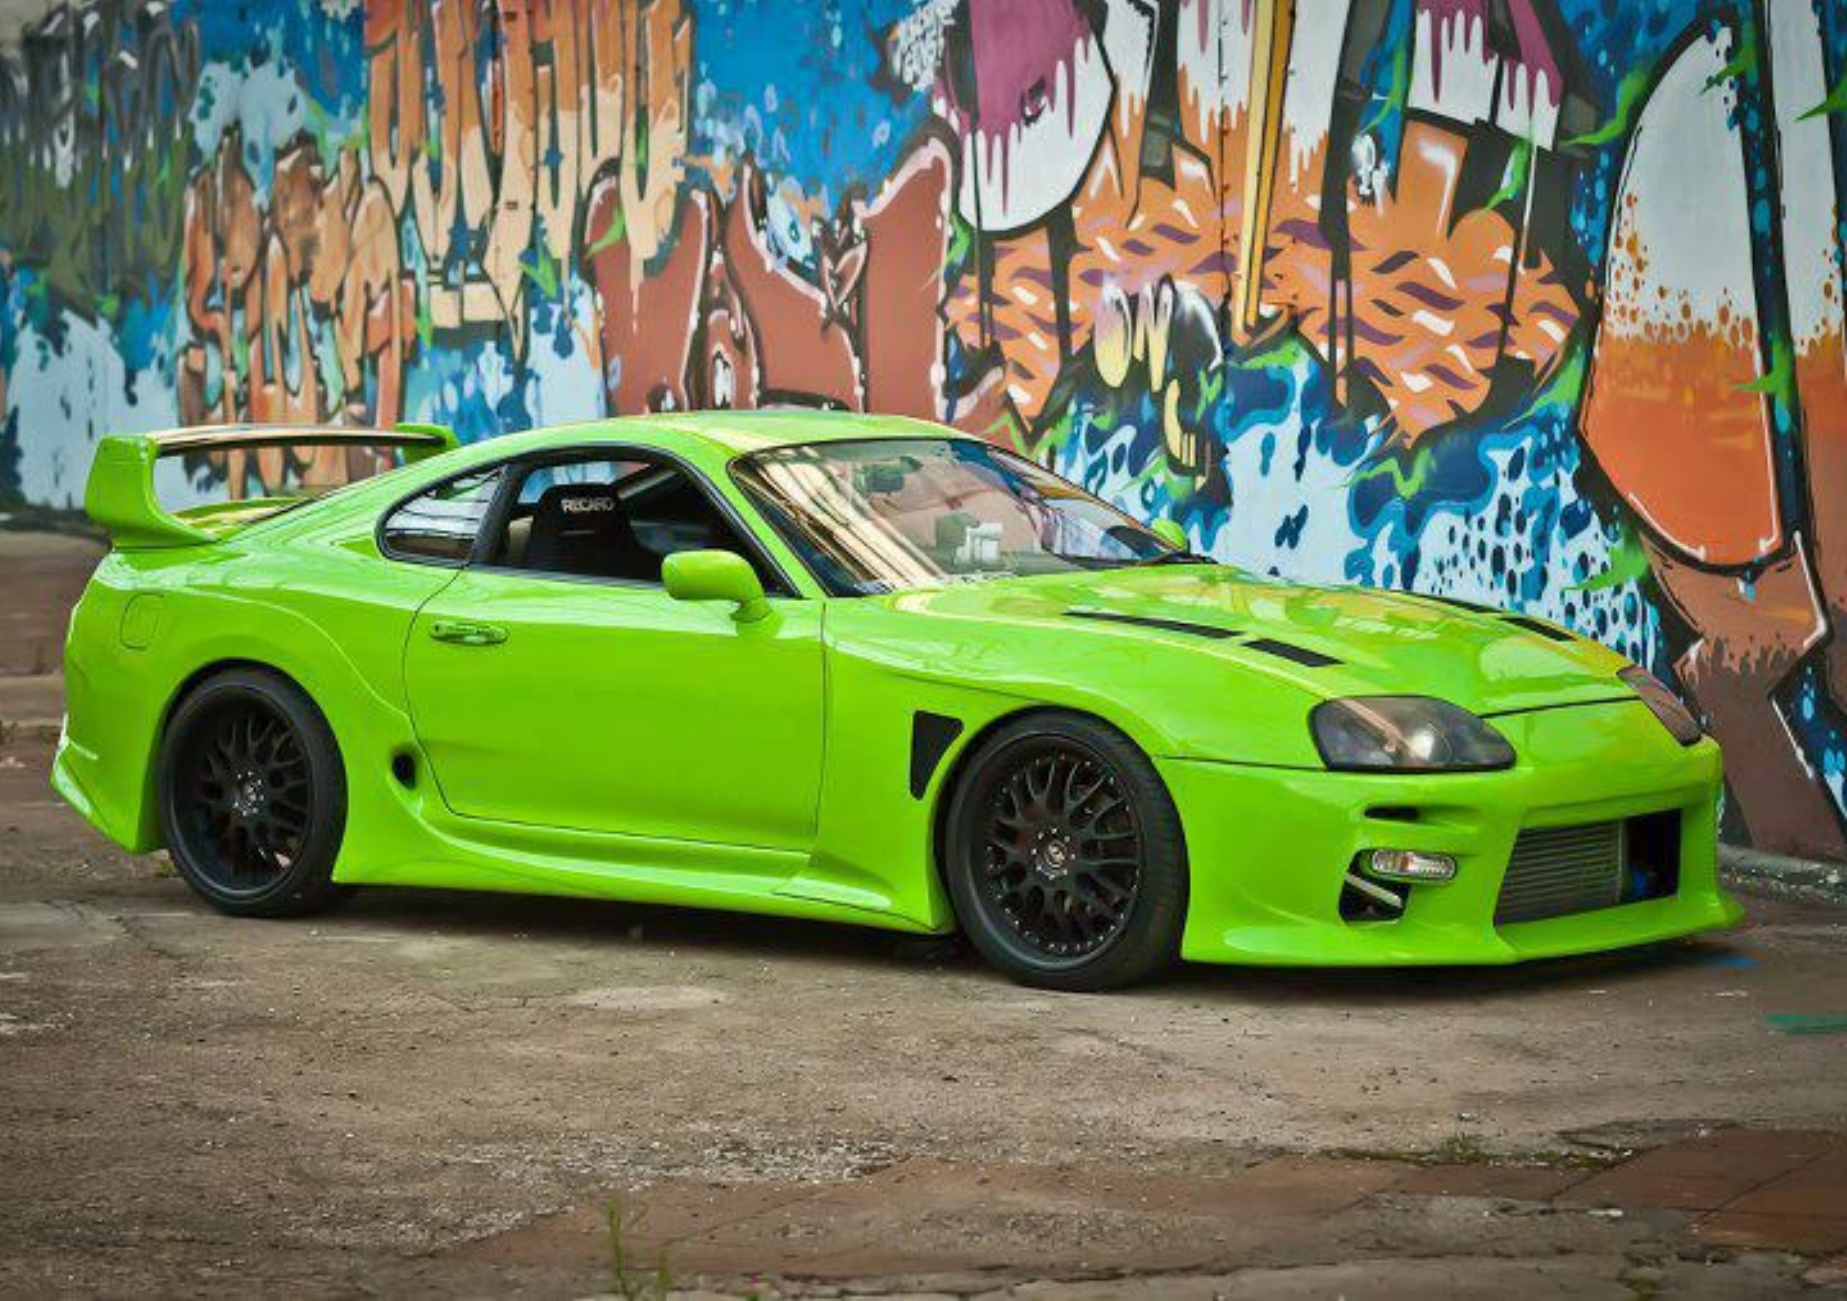 Ithaca Green Toyota Supra Turbo Looks The Business